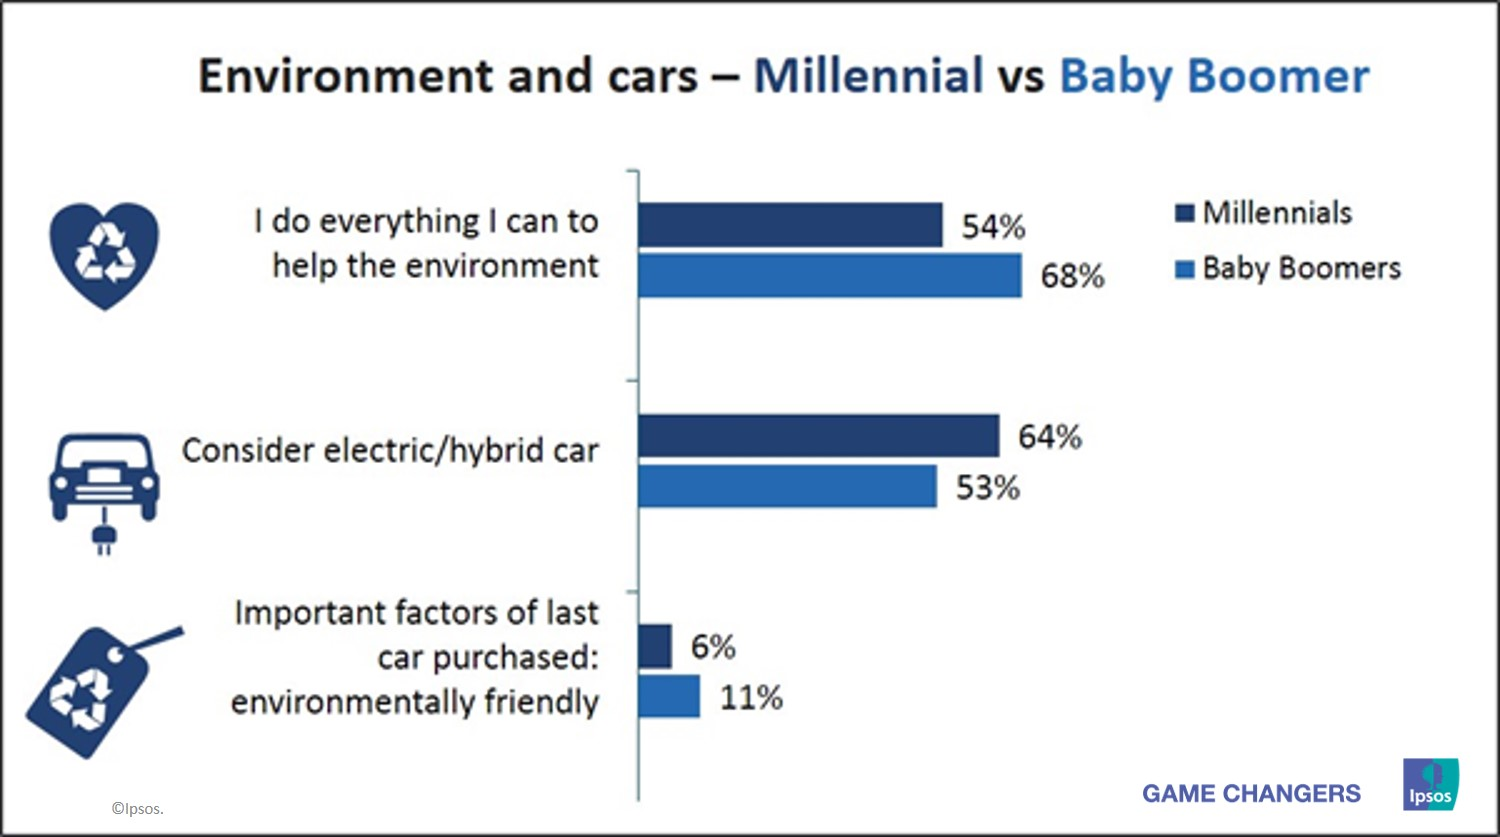 Environment and cars - millennial vs baby boomer